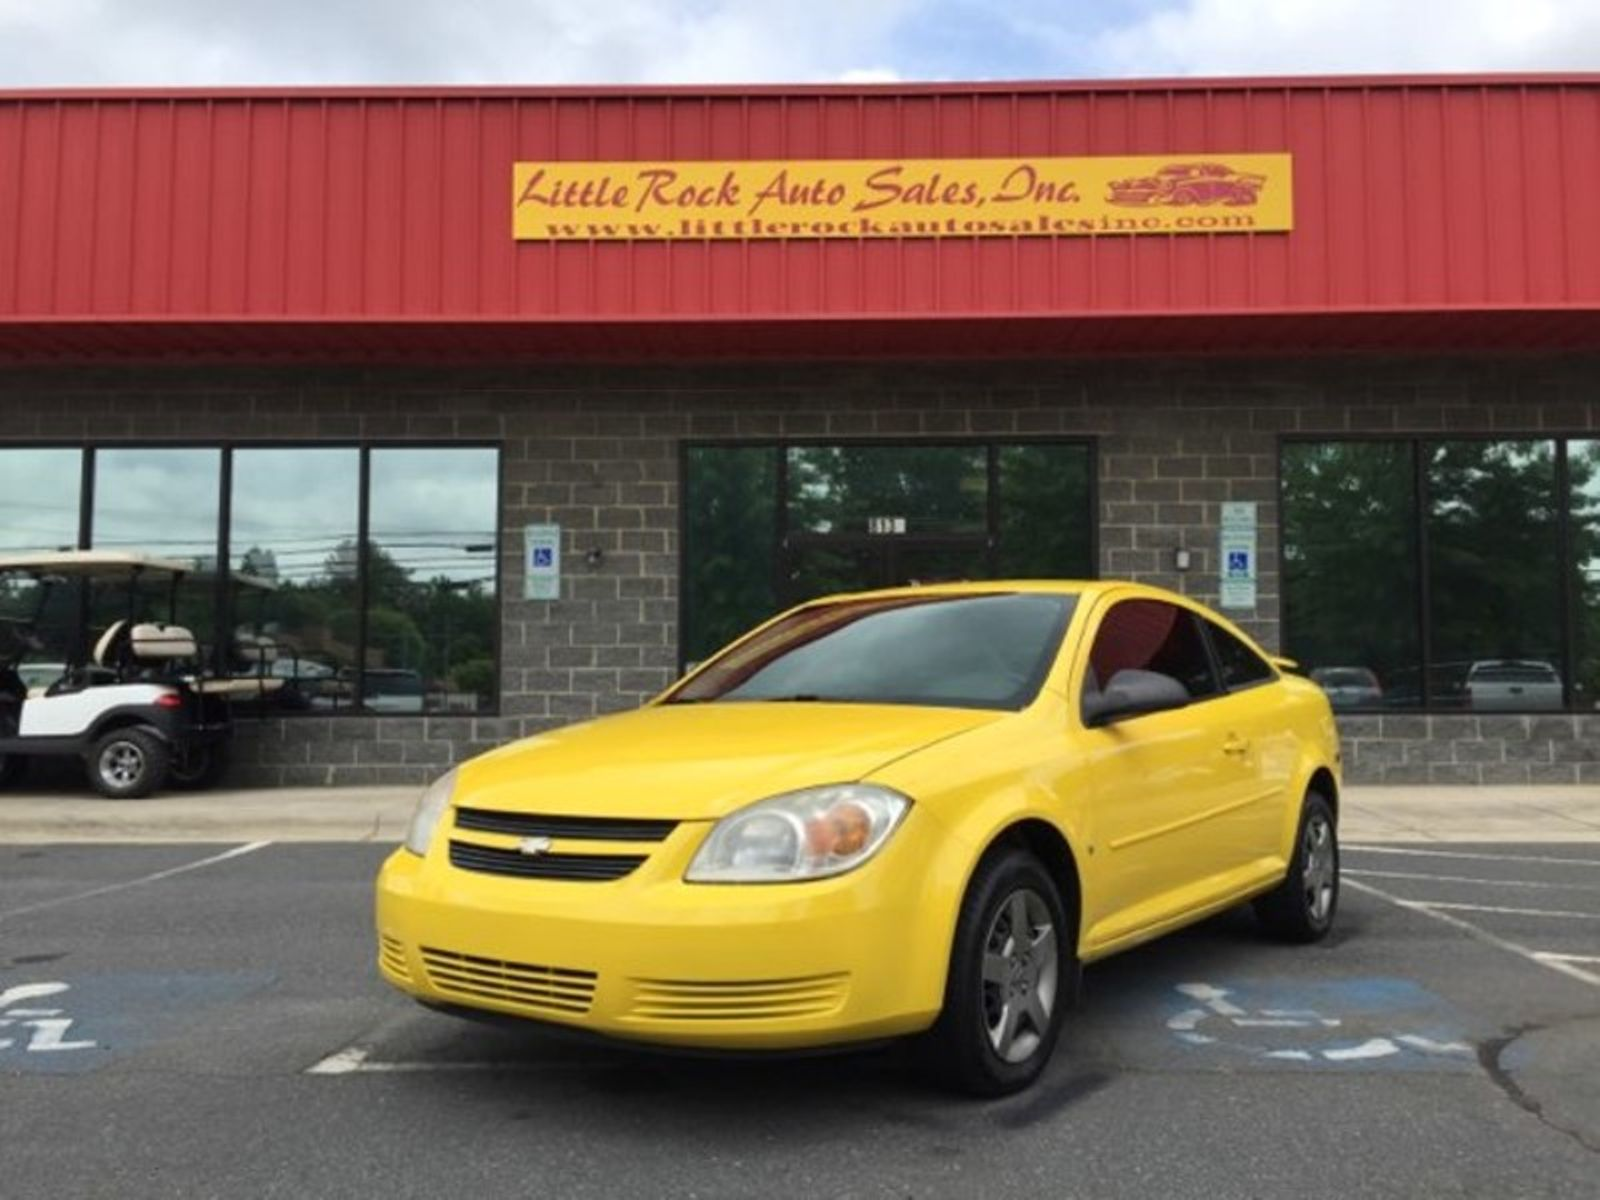 Used car dealer in concord nc serving charlotte gastonia html autos - Chevrolet Cobalt Ls In Charlotte Nc Used Cars Charlotte